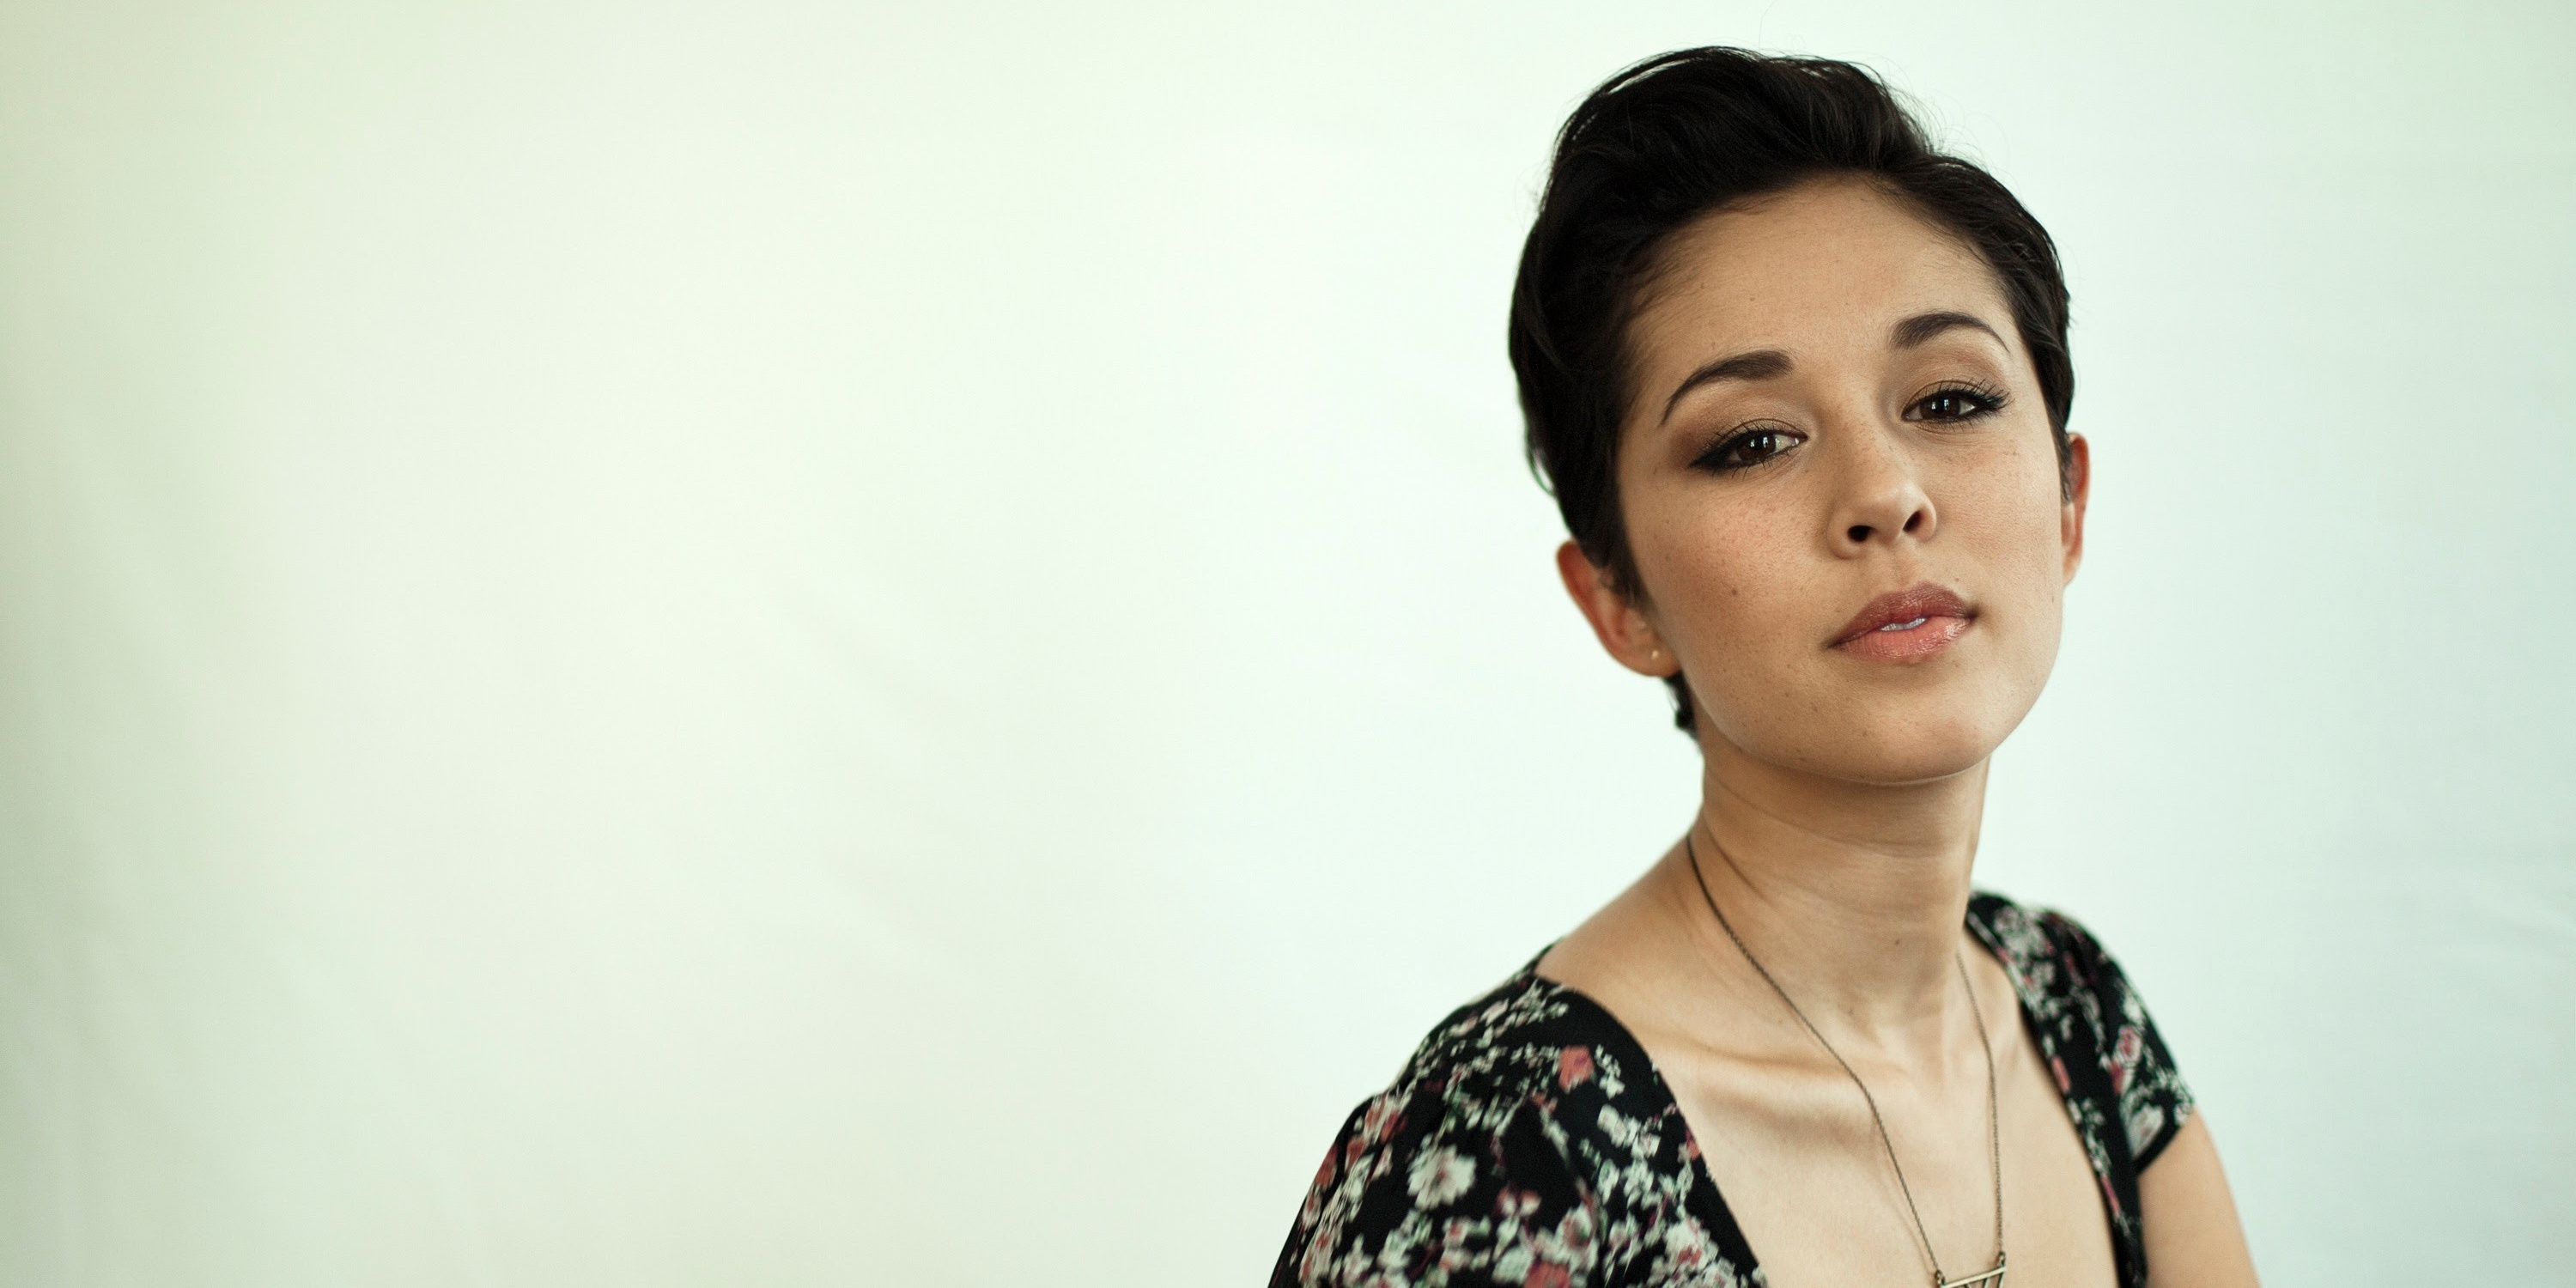 Read Kina Grannis' blog entry about her harrowing experience in Jakarta